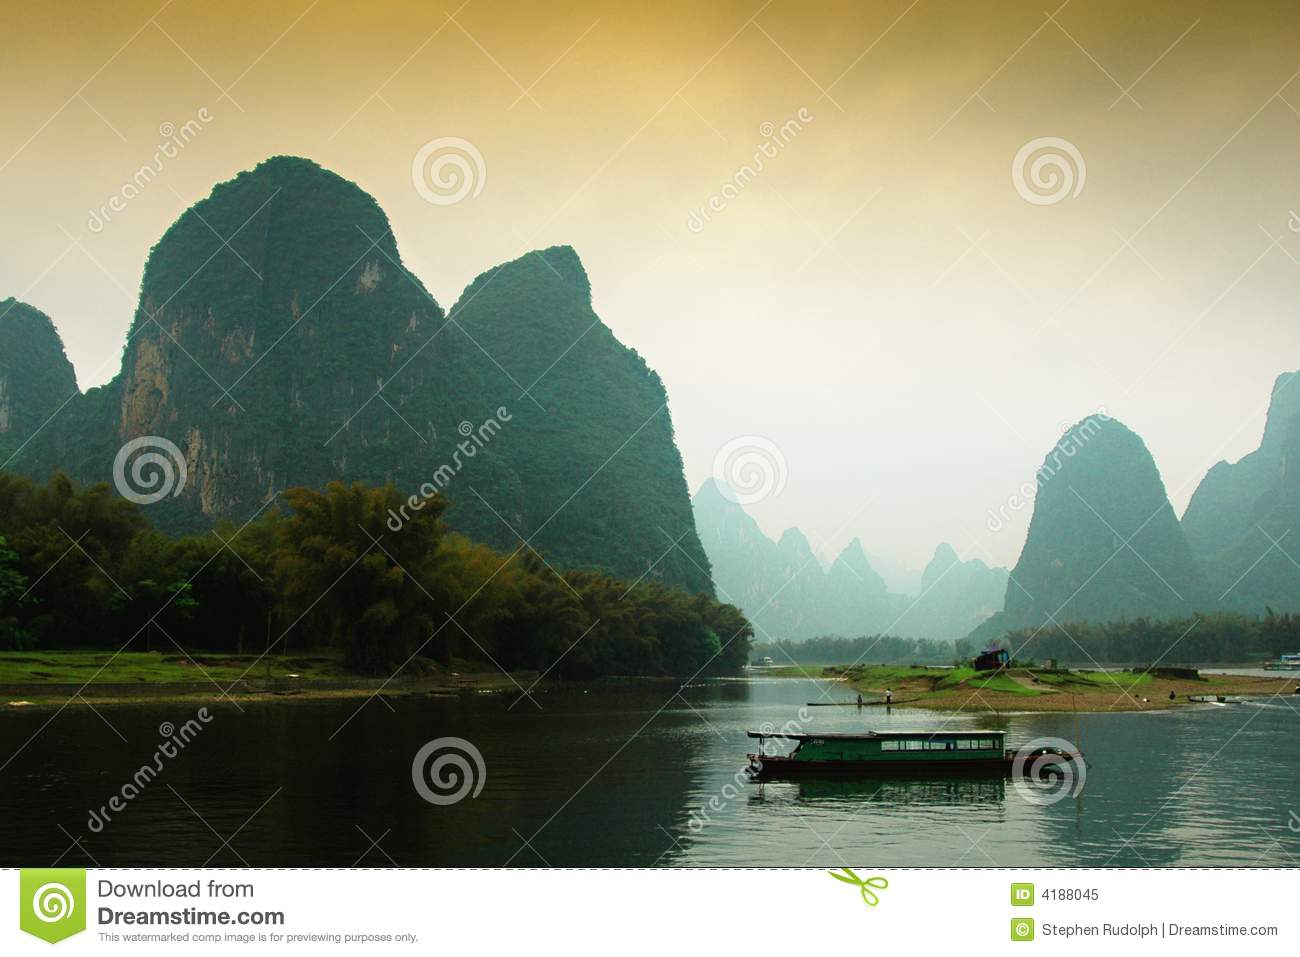 Guilin china landscape